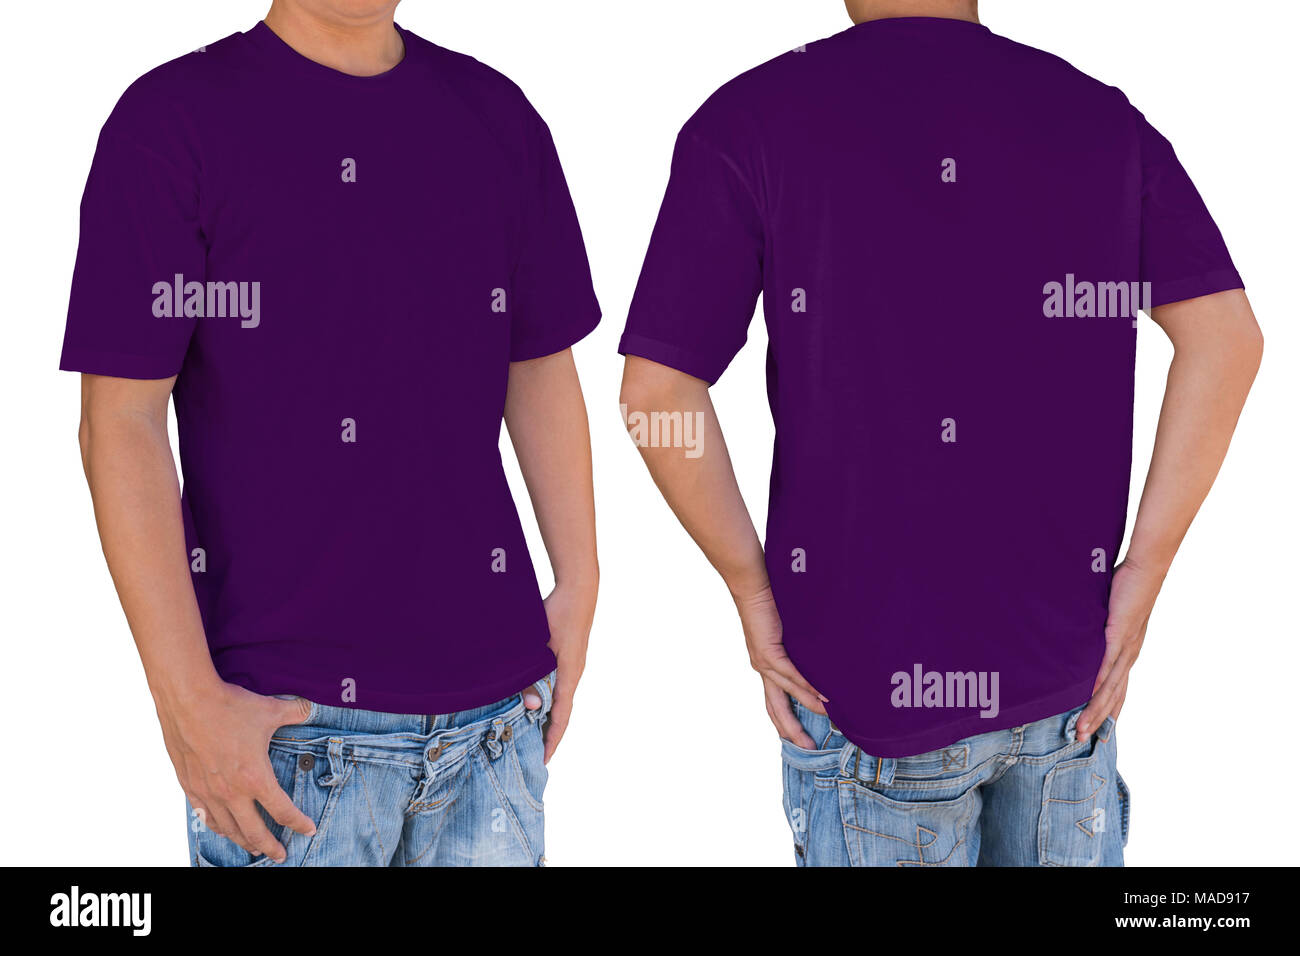 Man wearing blank dark magenta color t-shirt with clipping path, front and back view. Template for insert logo, pattern, or artwork. - Stock Image